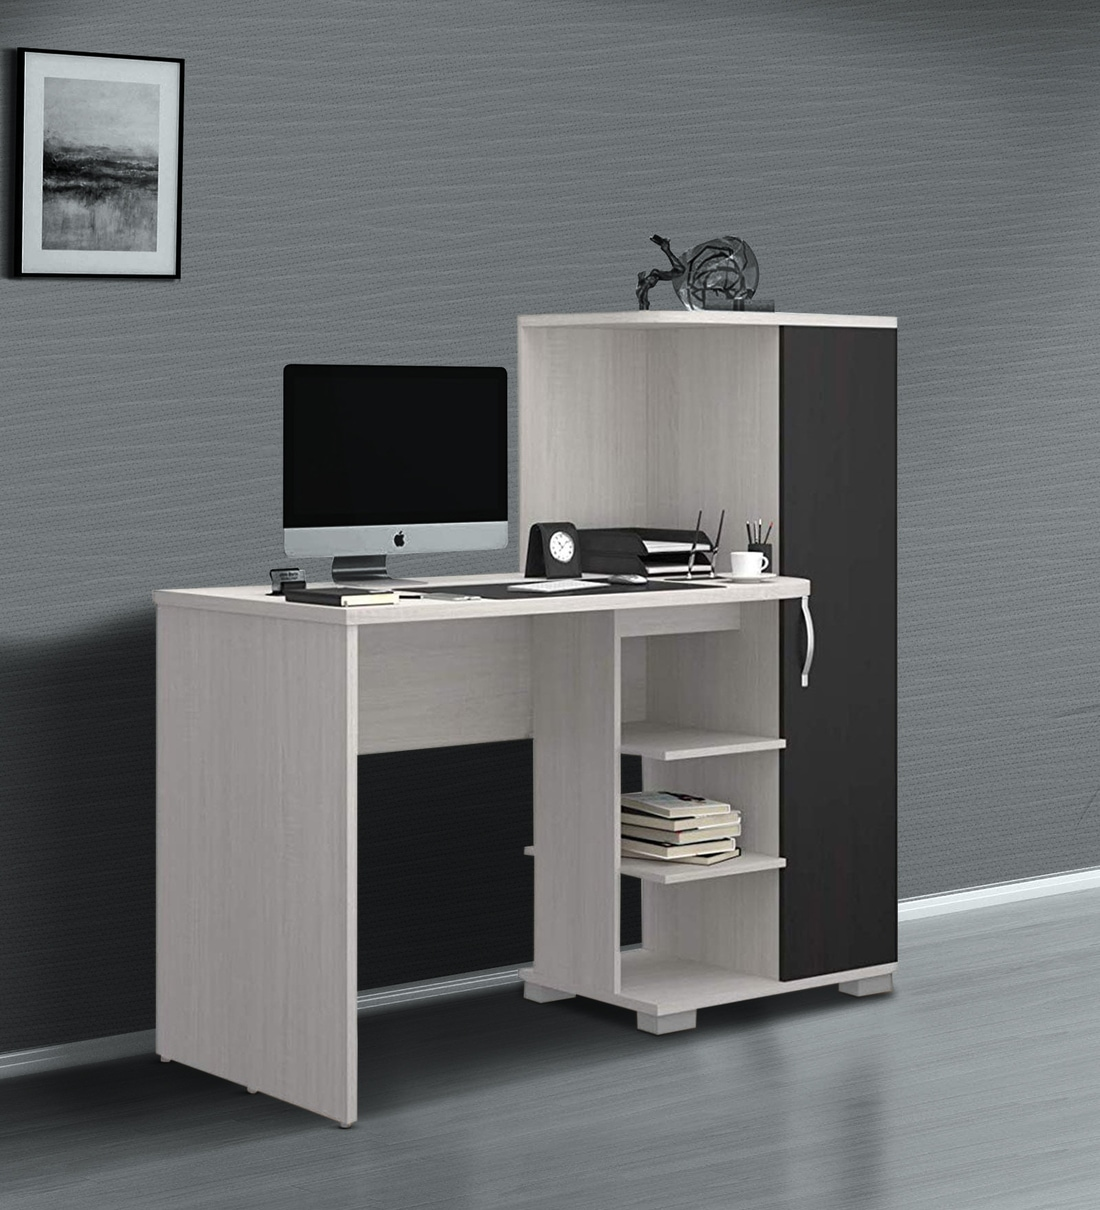 Buy Wesley Study Table In White Wenge Colour By Forzza Online Modern Writing Tables Tables Furniture Pepperfry Product